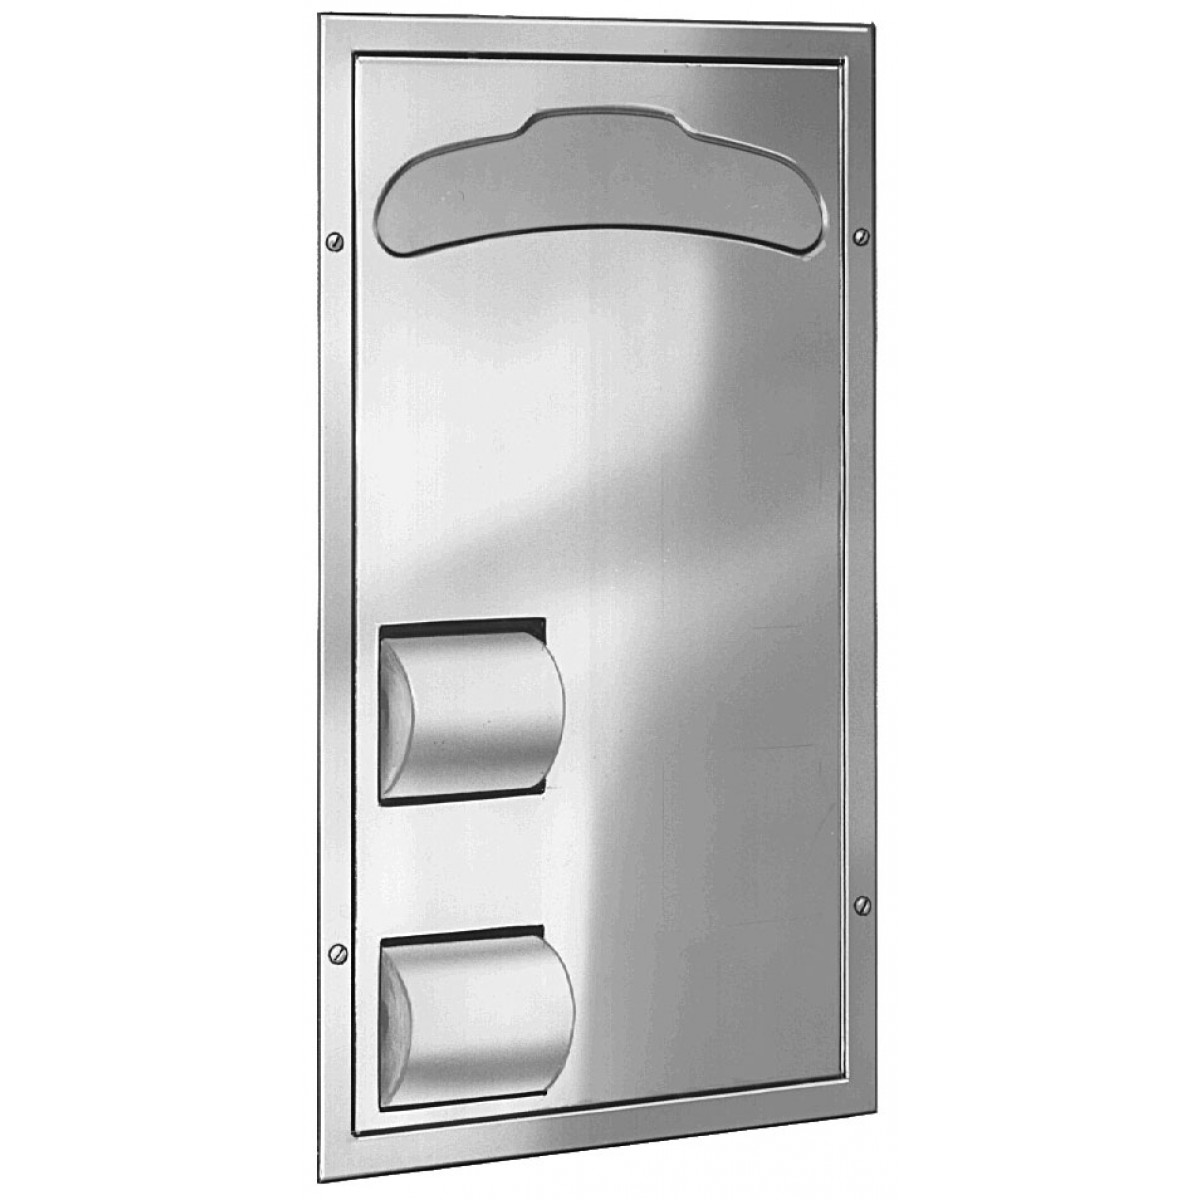 Bradley 5921 Partition Mounted 2-Stall Seat Cover/Tissue Dispenser